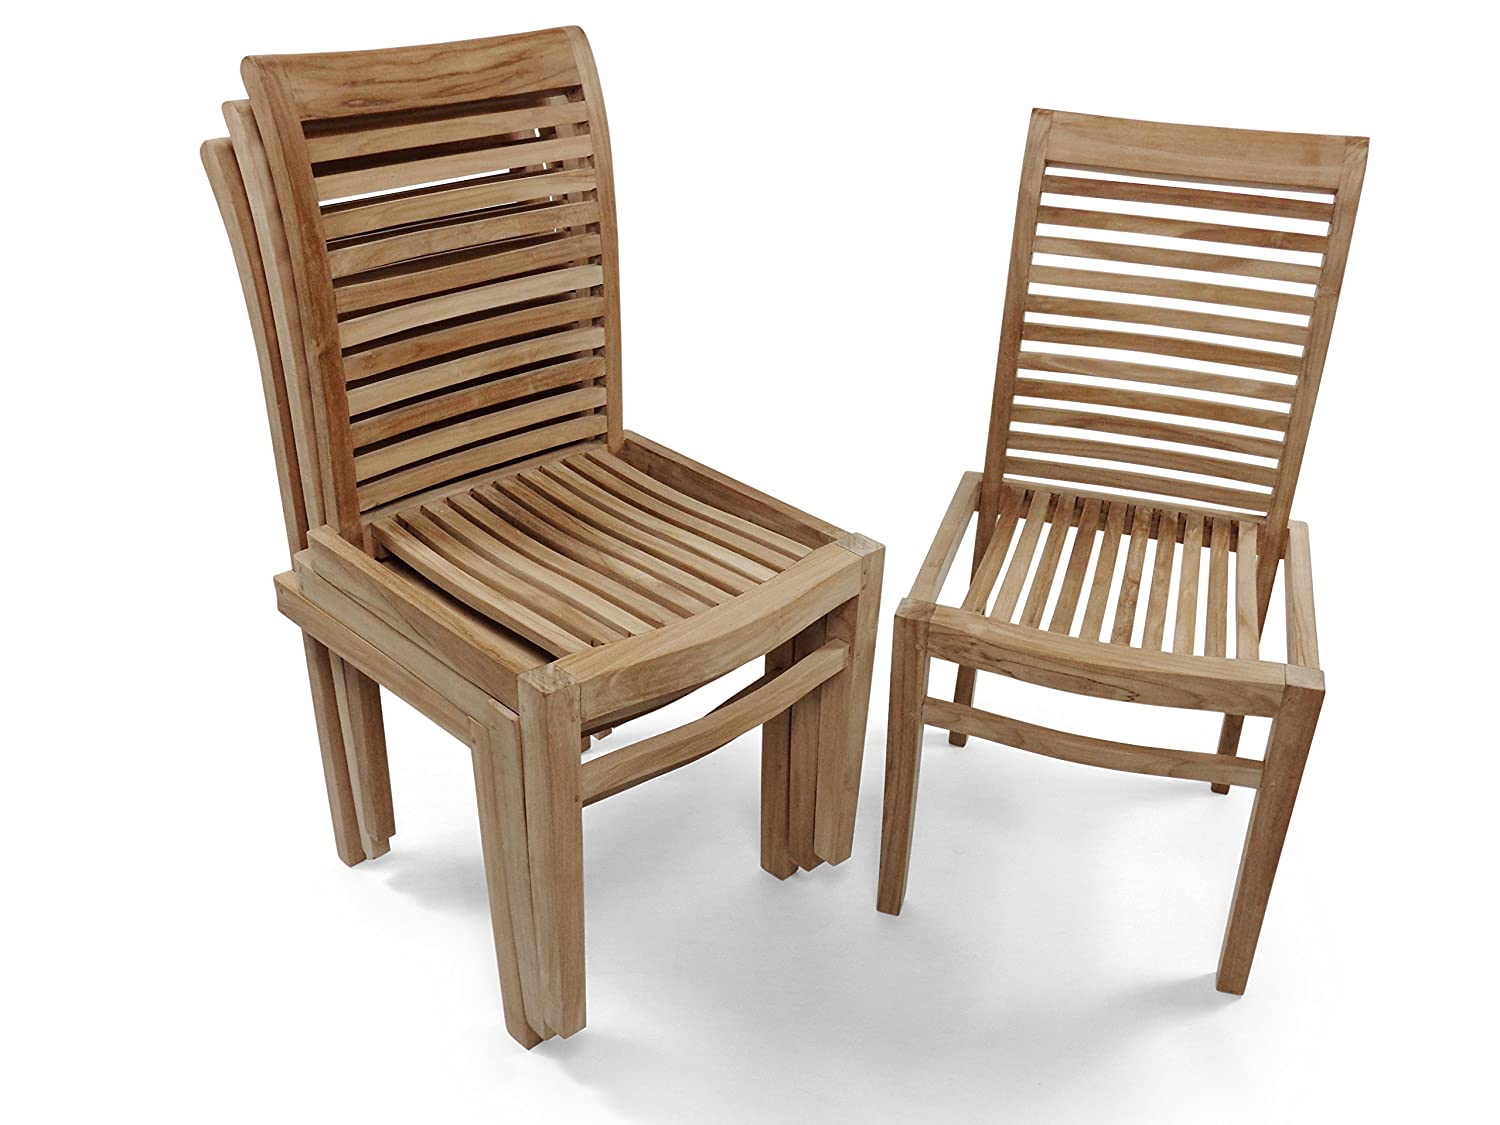 ... Grade A Teak Casa Blanca Armless Stacking Chair, Designer Look W  Contour Seats. Assembled. Packed And Priced 4 Per Box, Worldu0027s Best Outdoor  Furniture!